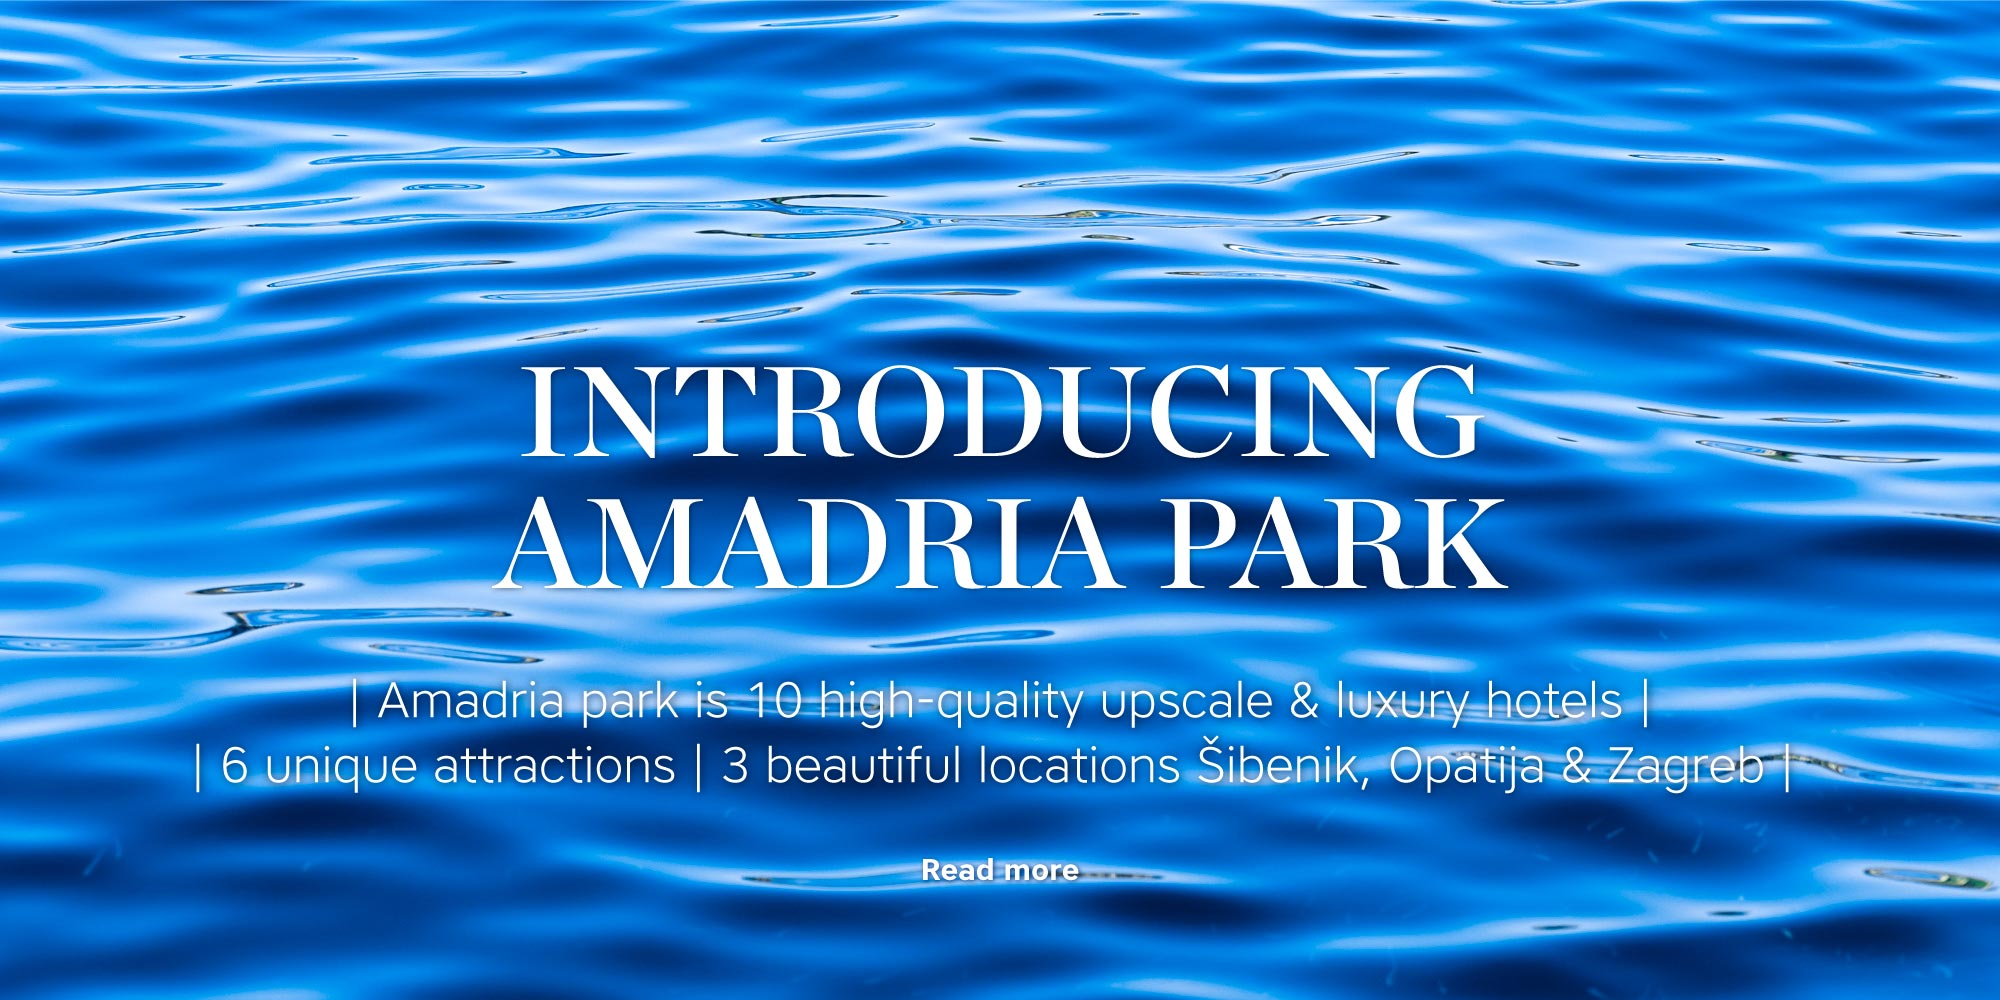 Web_slider_Introducing_Amadria_Park_ENG